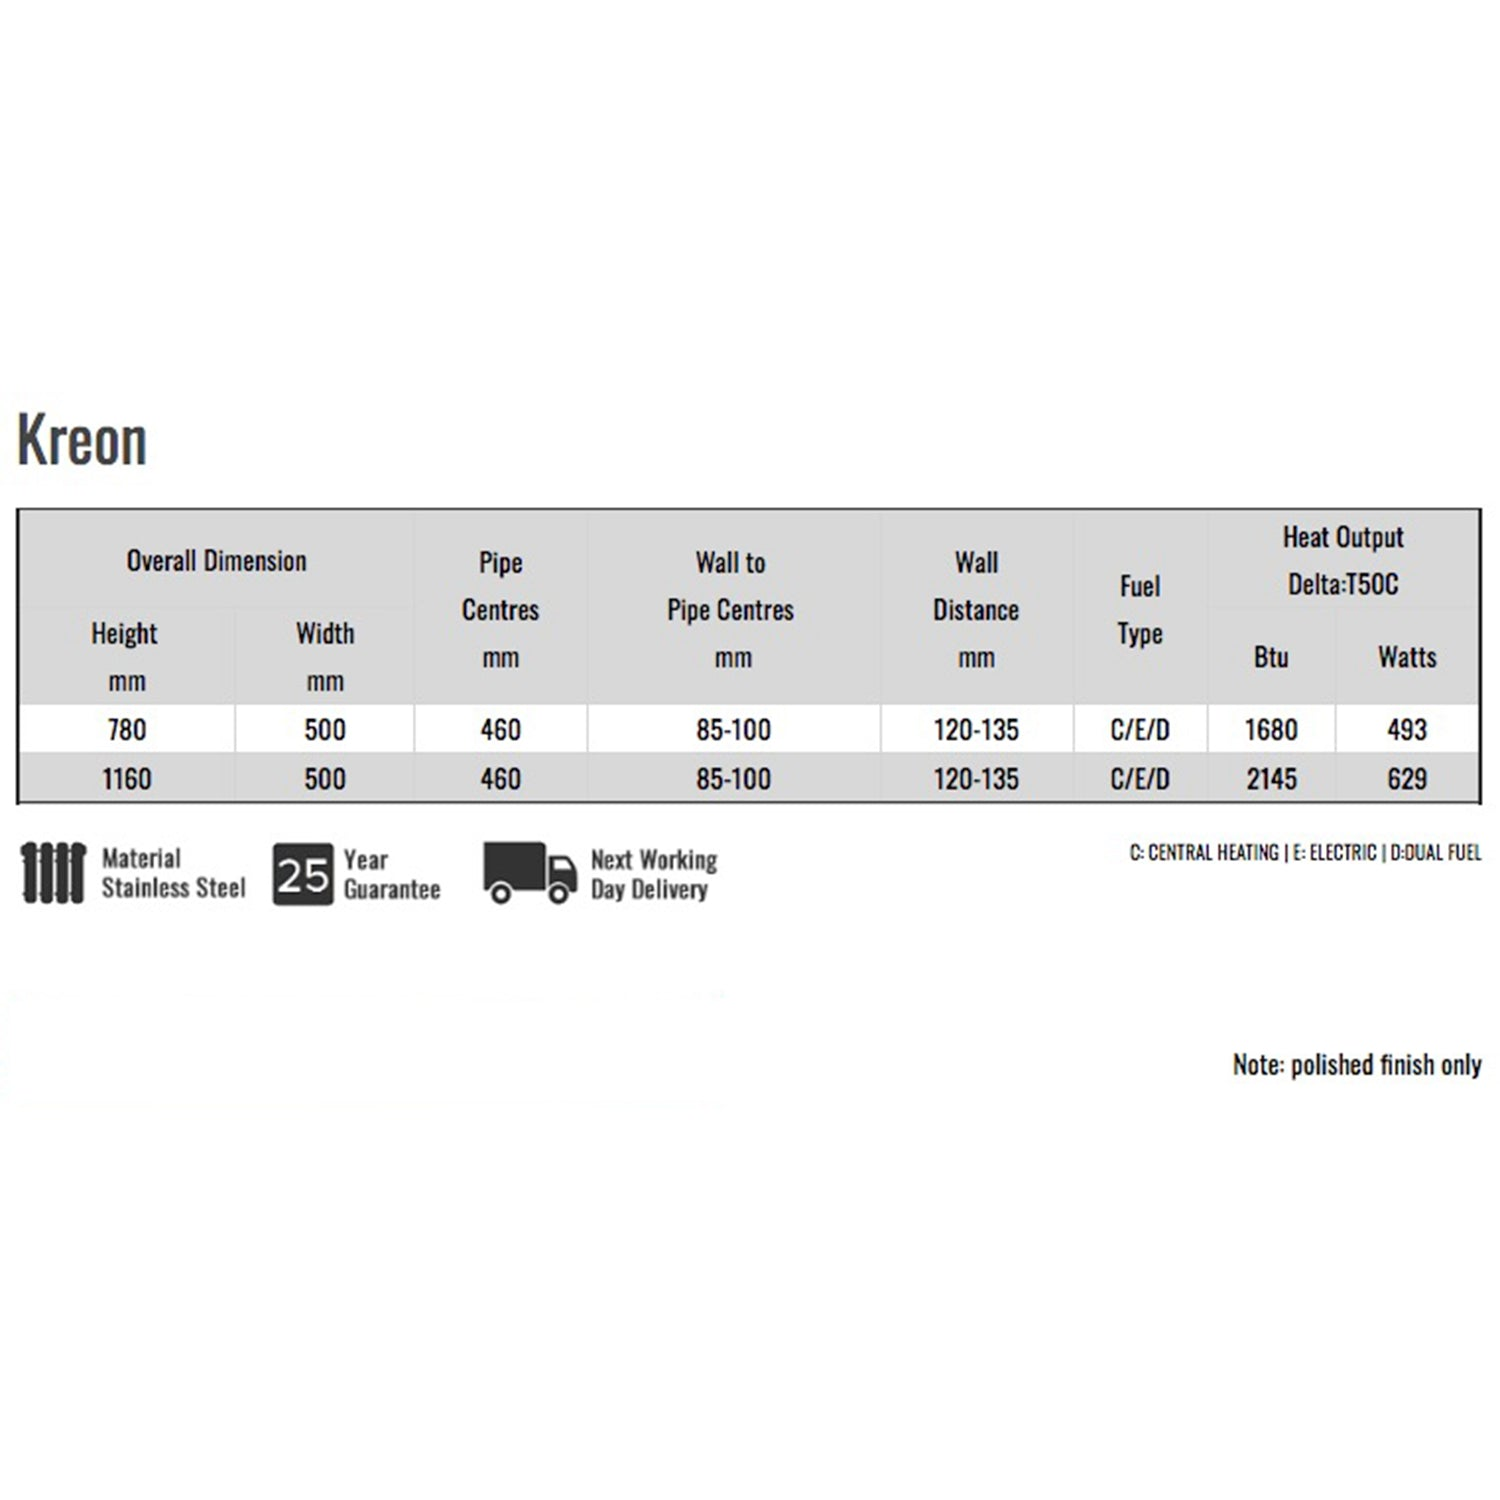 Kreon Designer Radiator Specification Chart